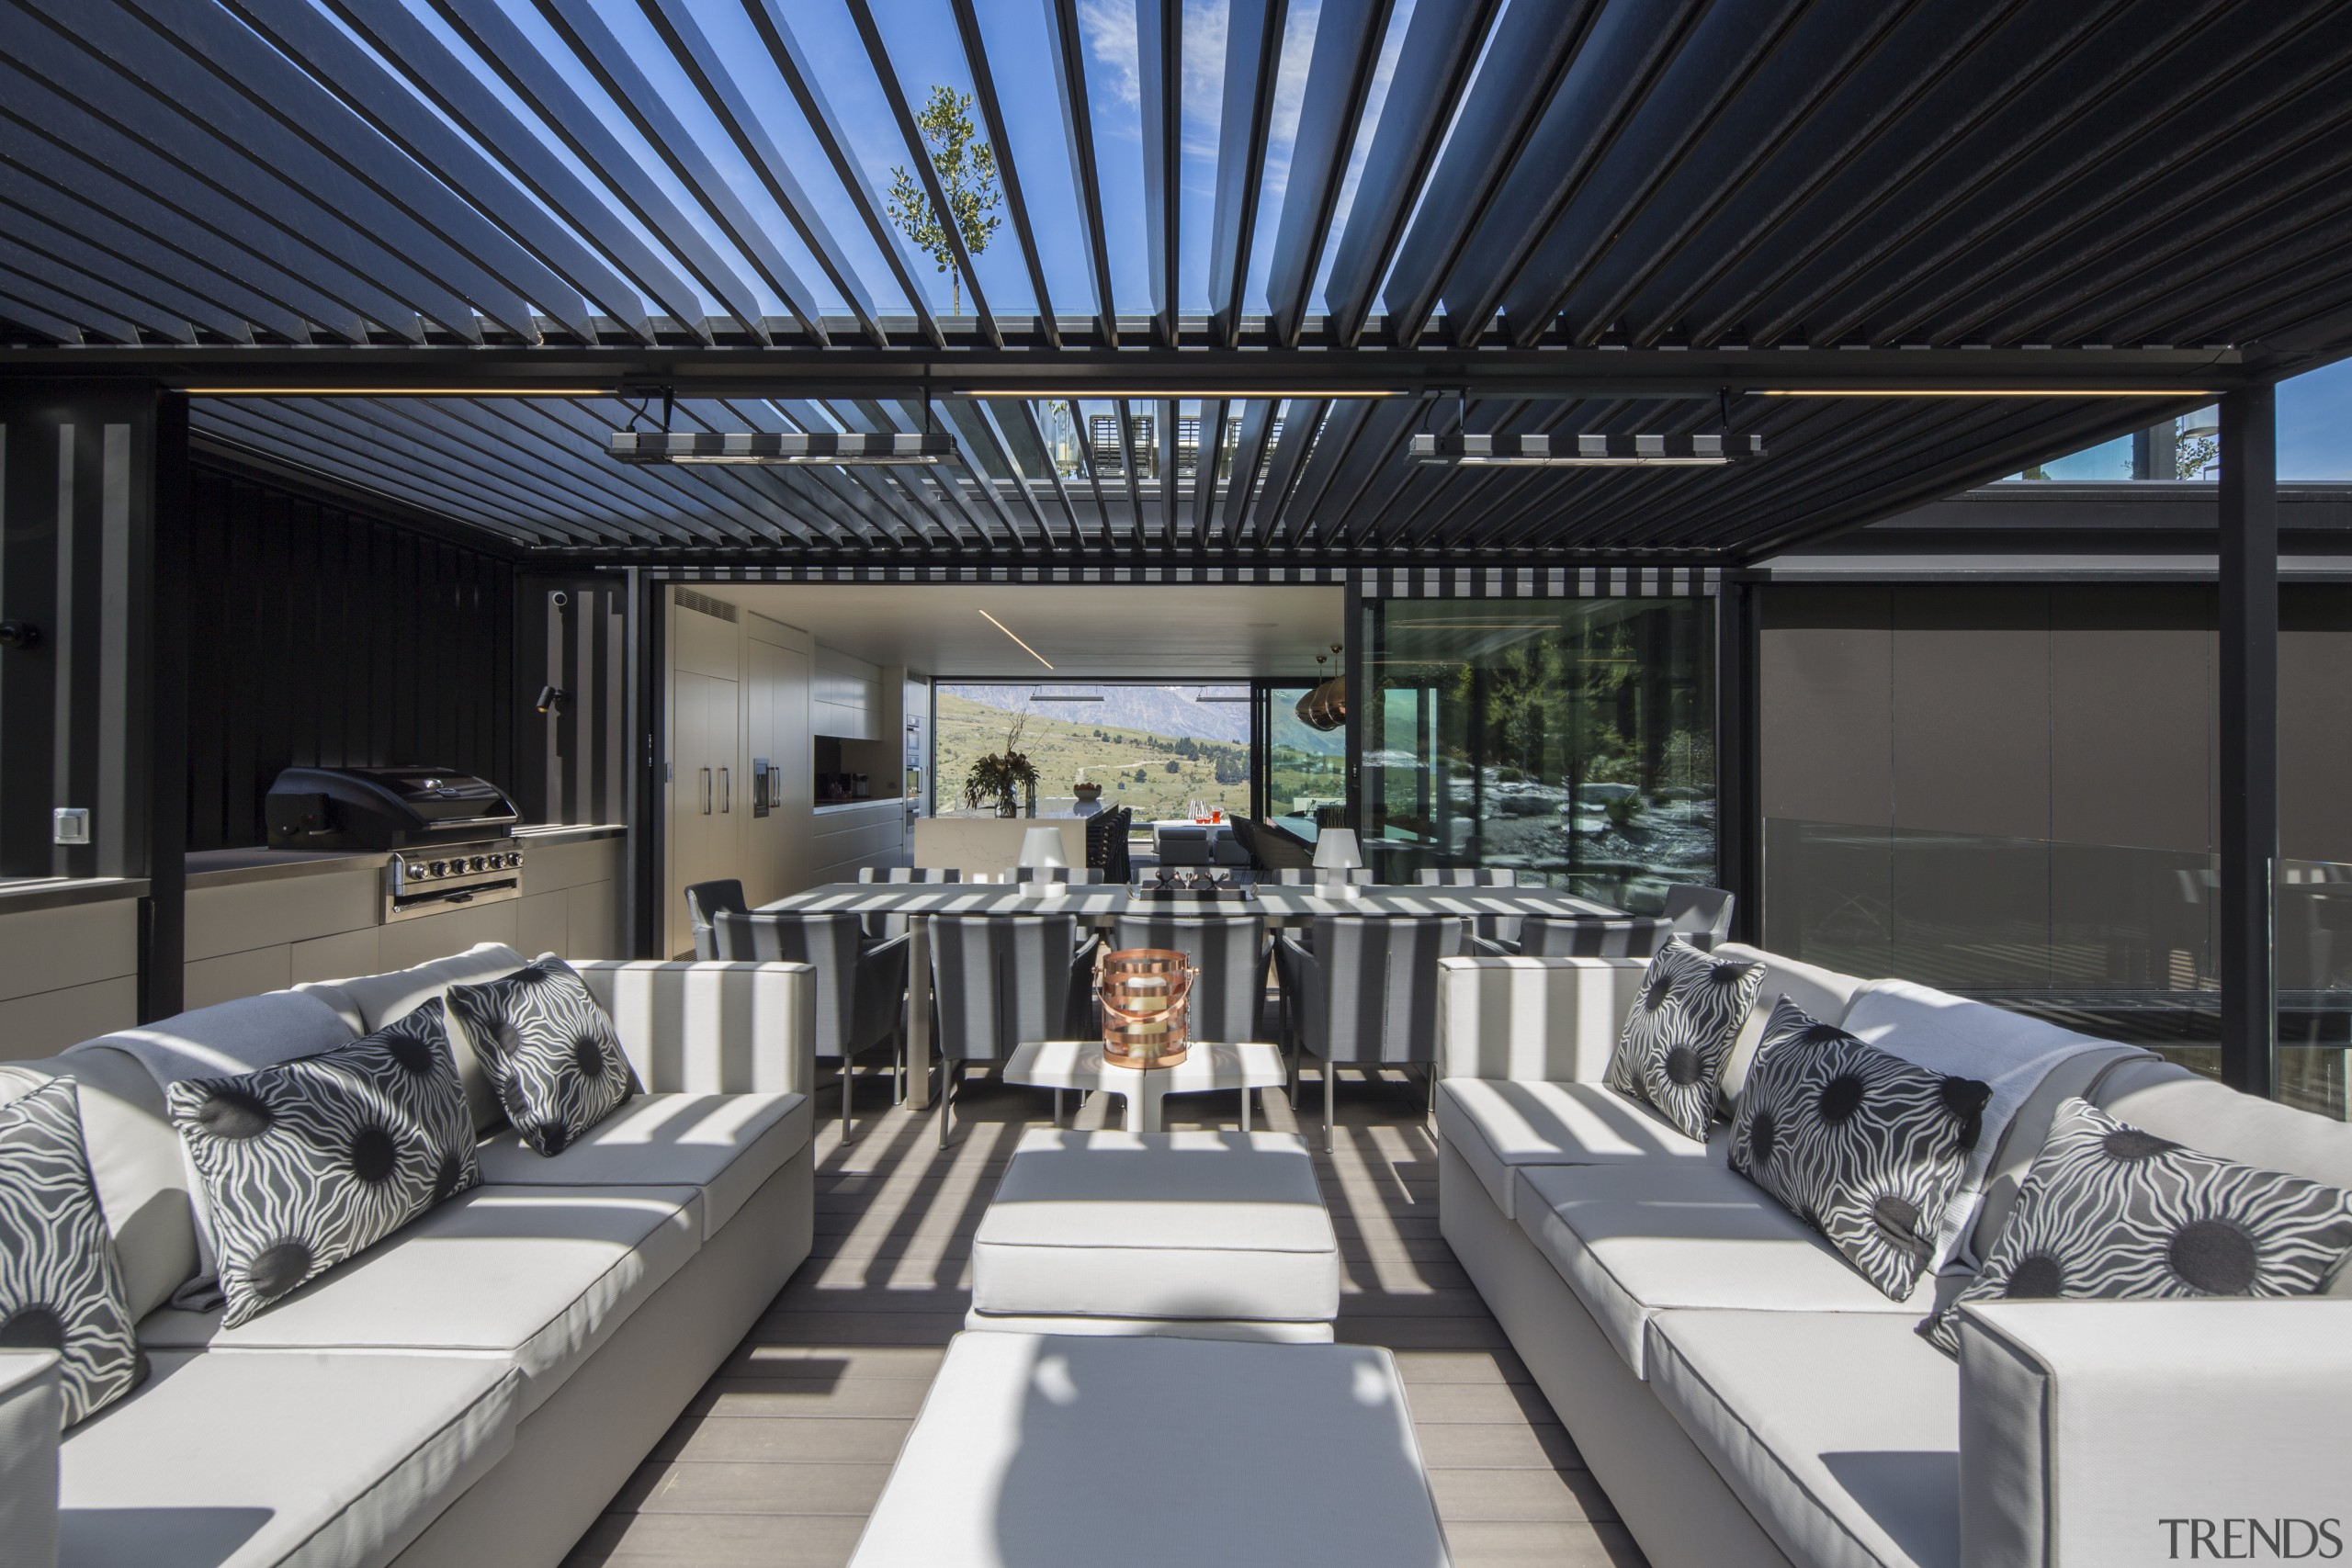 An outdoor barbecue and pizza area continues on architecture, interior design, Gary Todd Architecture, outdoor area, louvred roof